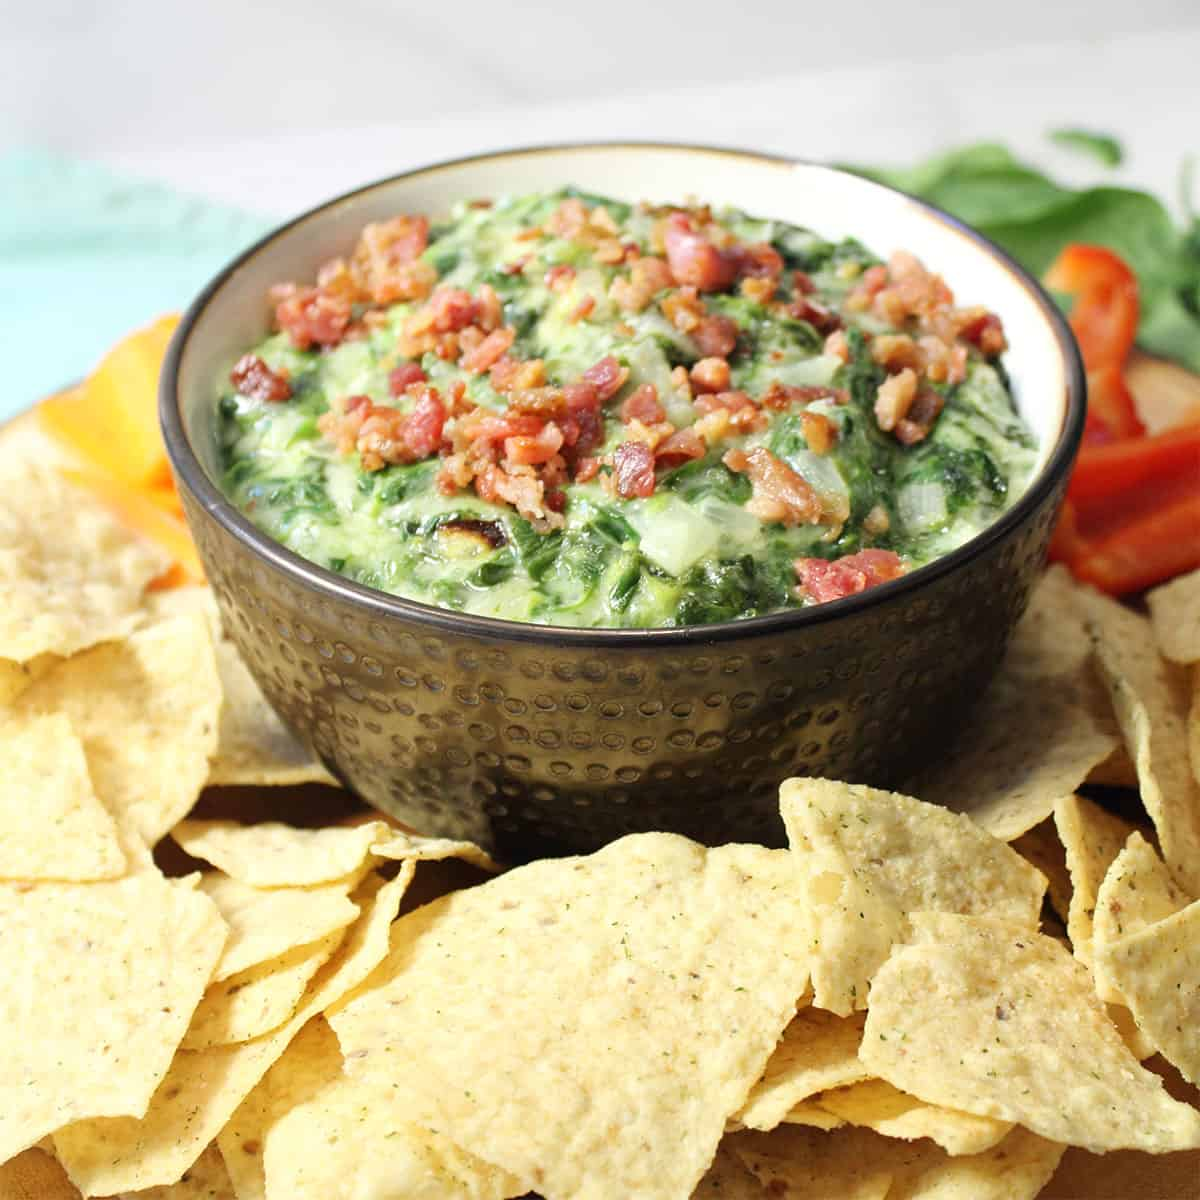 Dip in brown bowl on wooden circle with tortilla chips and dippers around it.